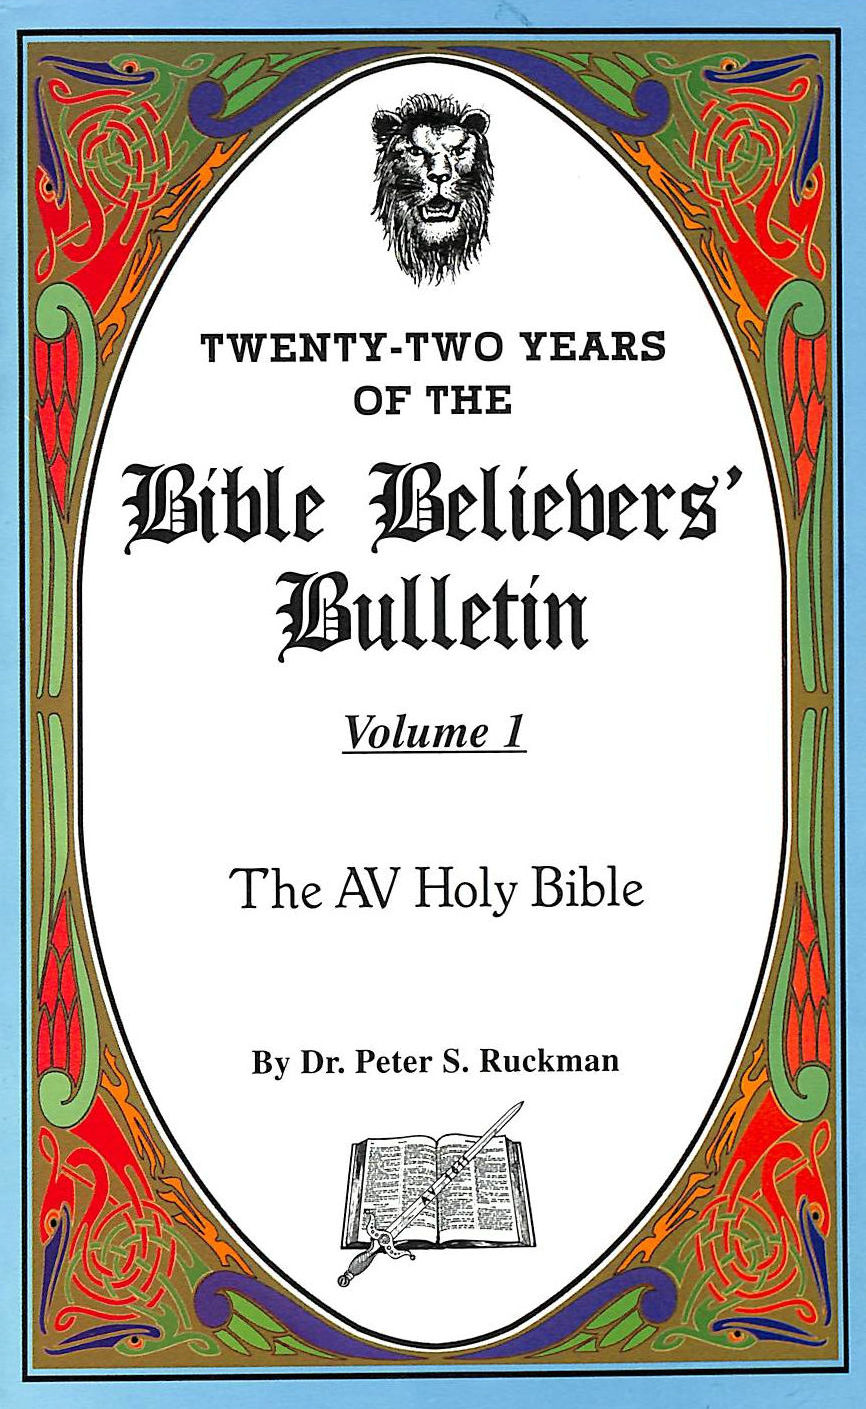 Image for Twenty-Two Years of the Bible Believers Bulletin. Volume One. The AV Hly Bible.